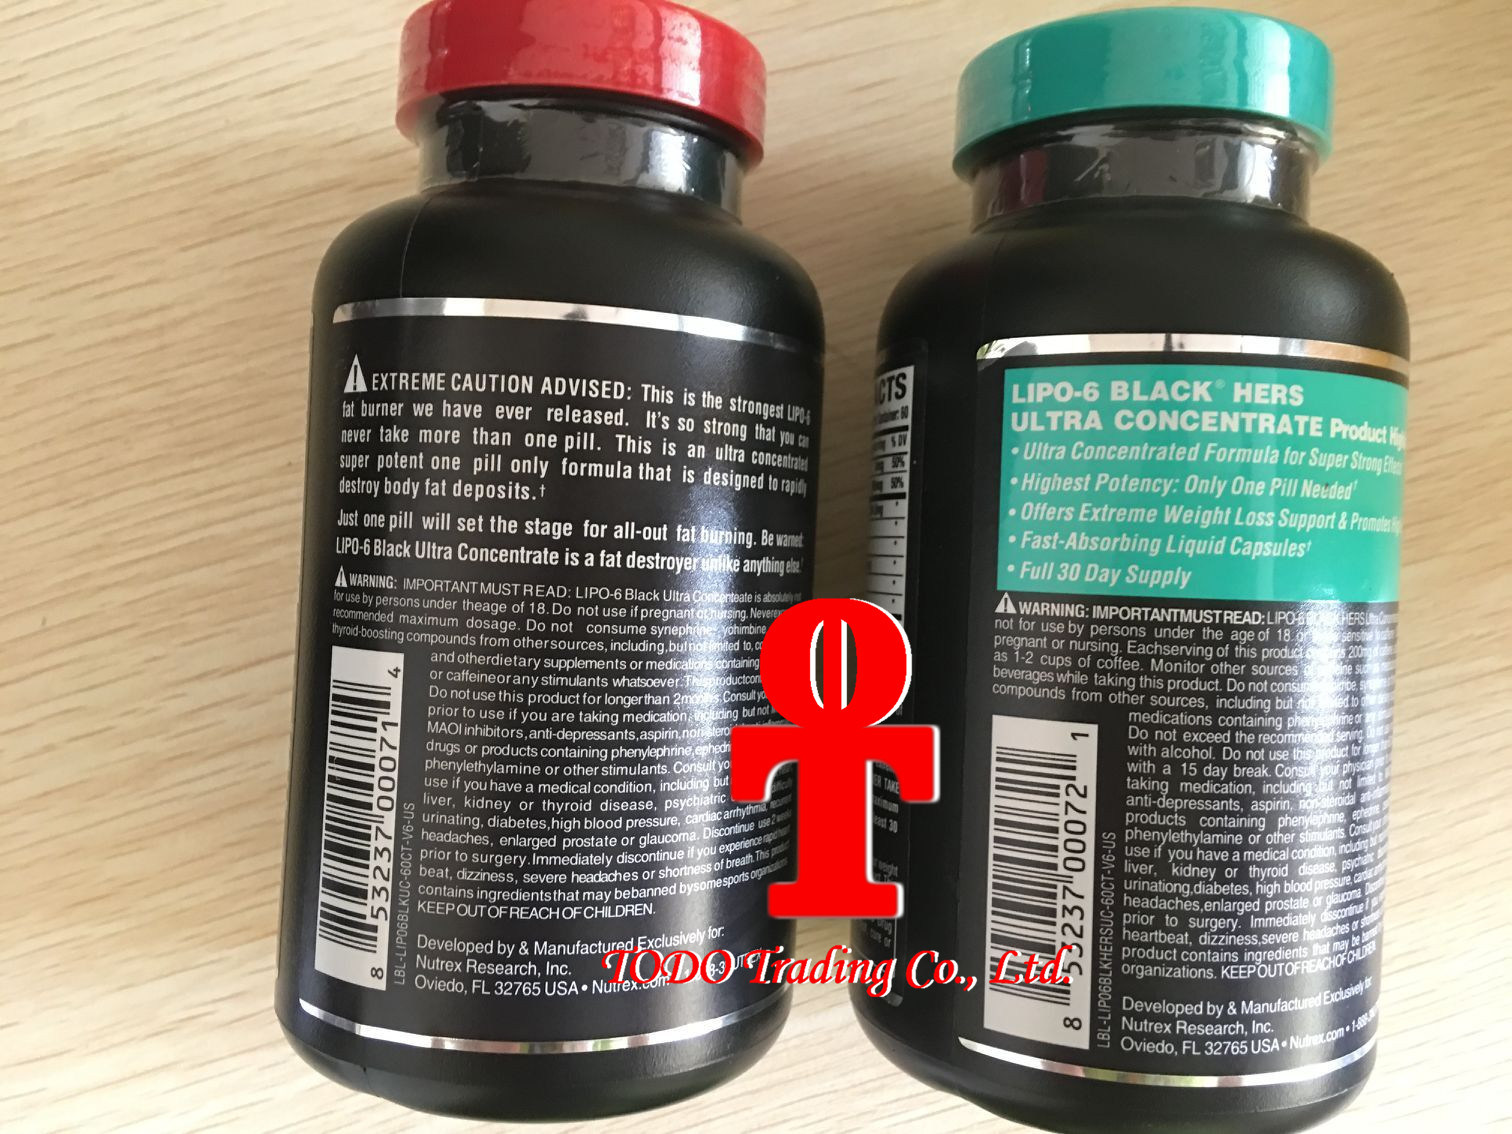 OEM/Nutrex Research Labs Lipo 6 Black Ultra Concentrate 60 Black Capsule Sports Energy